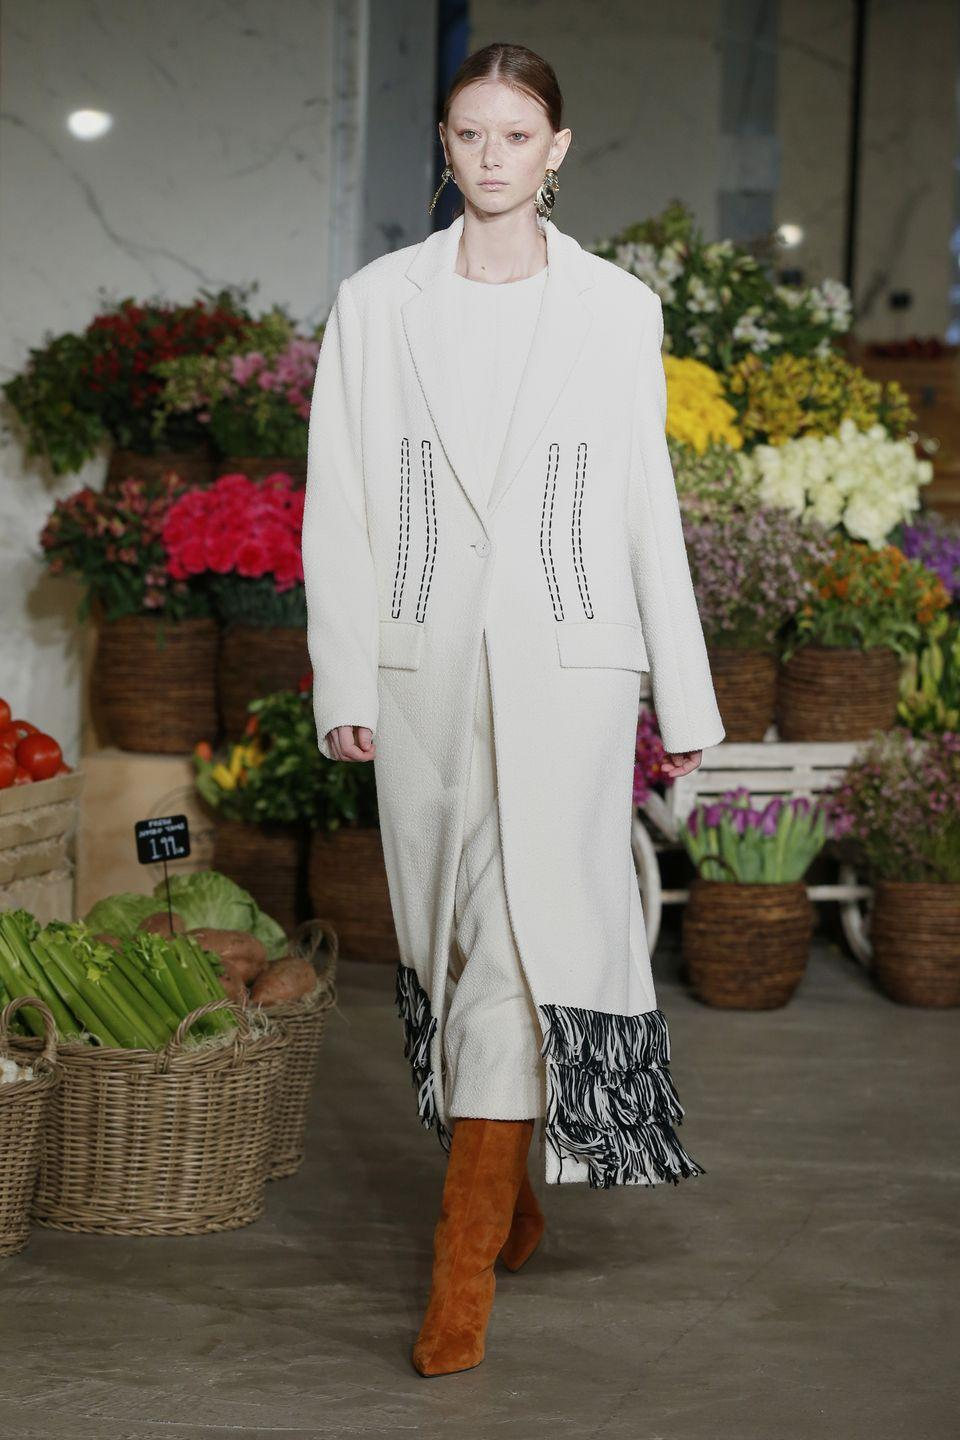 "<p>For autumn/winter 2021, Jason Wu presented a trip to ""Mr. Wu's Grocery Store' – an uplifting runway that took us on a journey through the aisles of a (decidedly chic) supermarket. The beauty look was pared-back but not totally bare-skinned, with a creamy neutral eyeshadow, just a shade or two darker than each model's skin tone, washed right around the eye to create lived-in definition.</p>"